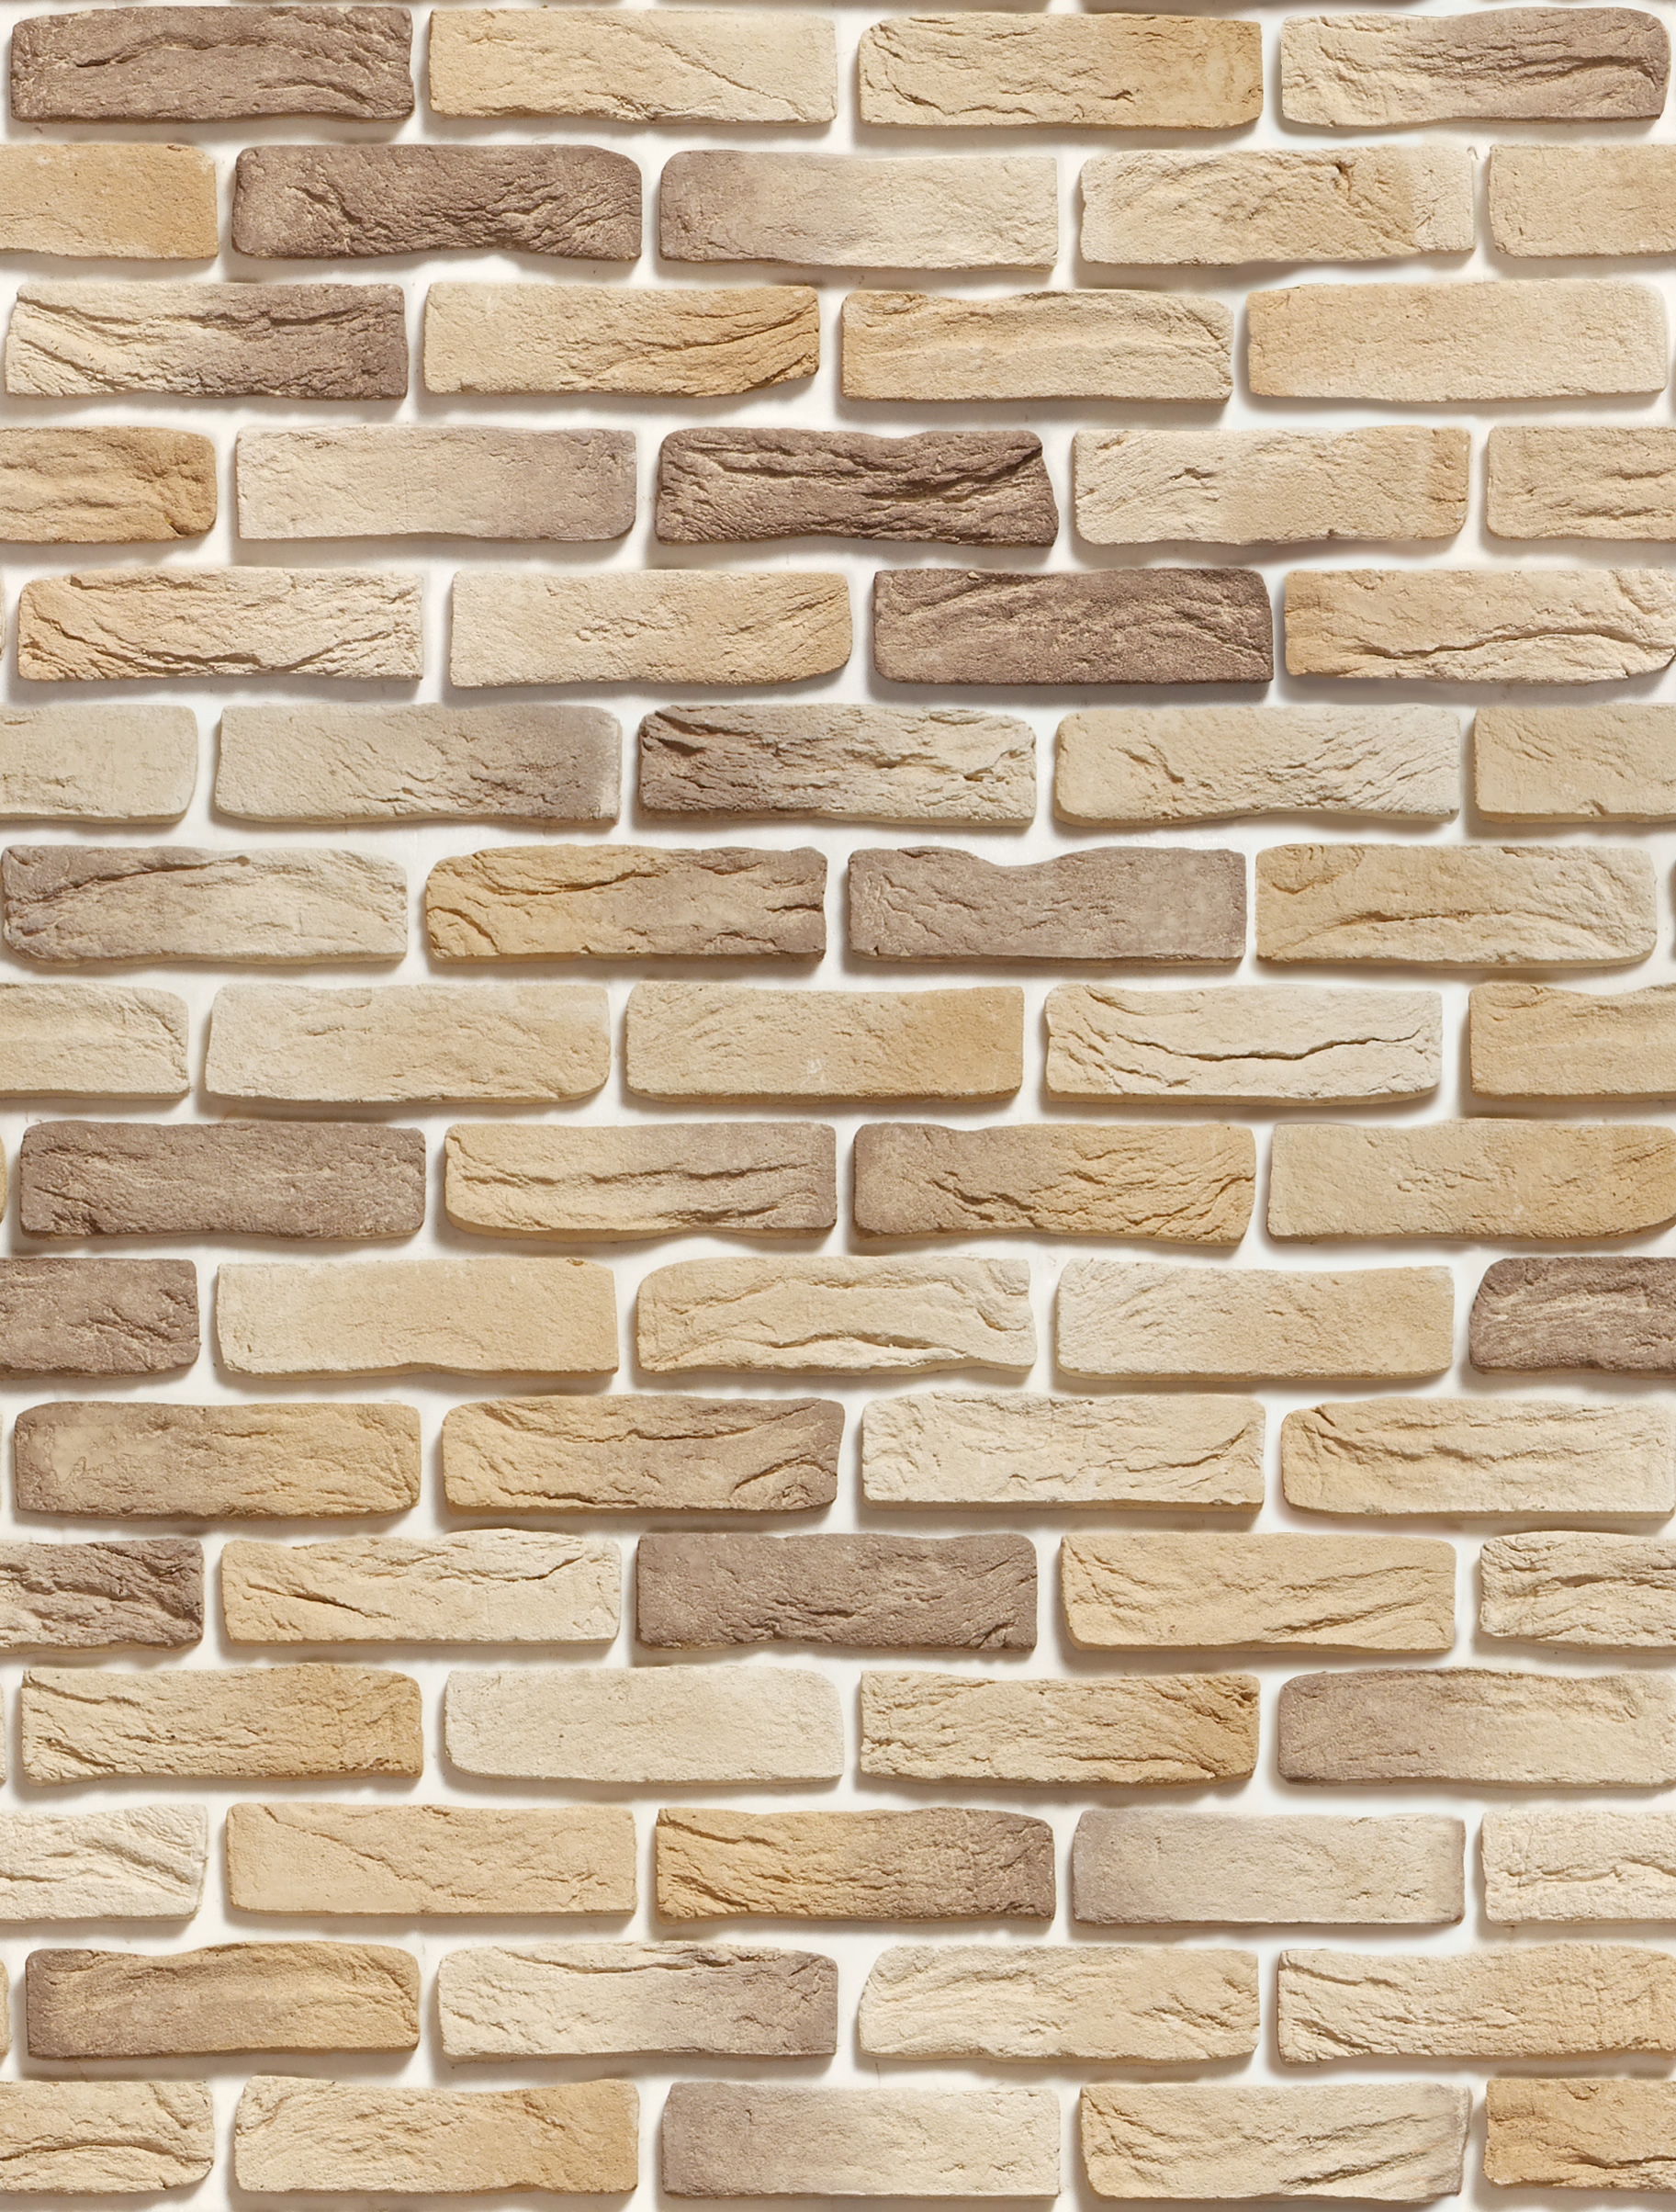 Brick Texture, Decorative Brick, Bricks, Texture, Download. Emergency Room Std Testing. Family Dollar Home Decor. Cottage Dining Room. Coral Home Decor. Cheap Rooms In Myrtle Beach. Distressed Wall Decor. Sofa For Living Room. Little Girl Room Decorating Ideas